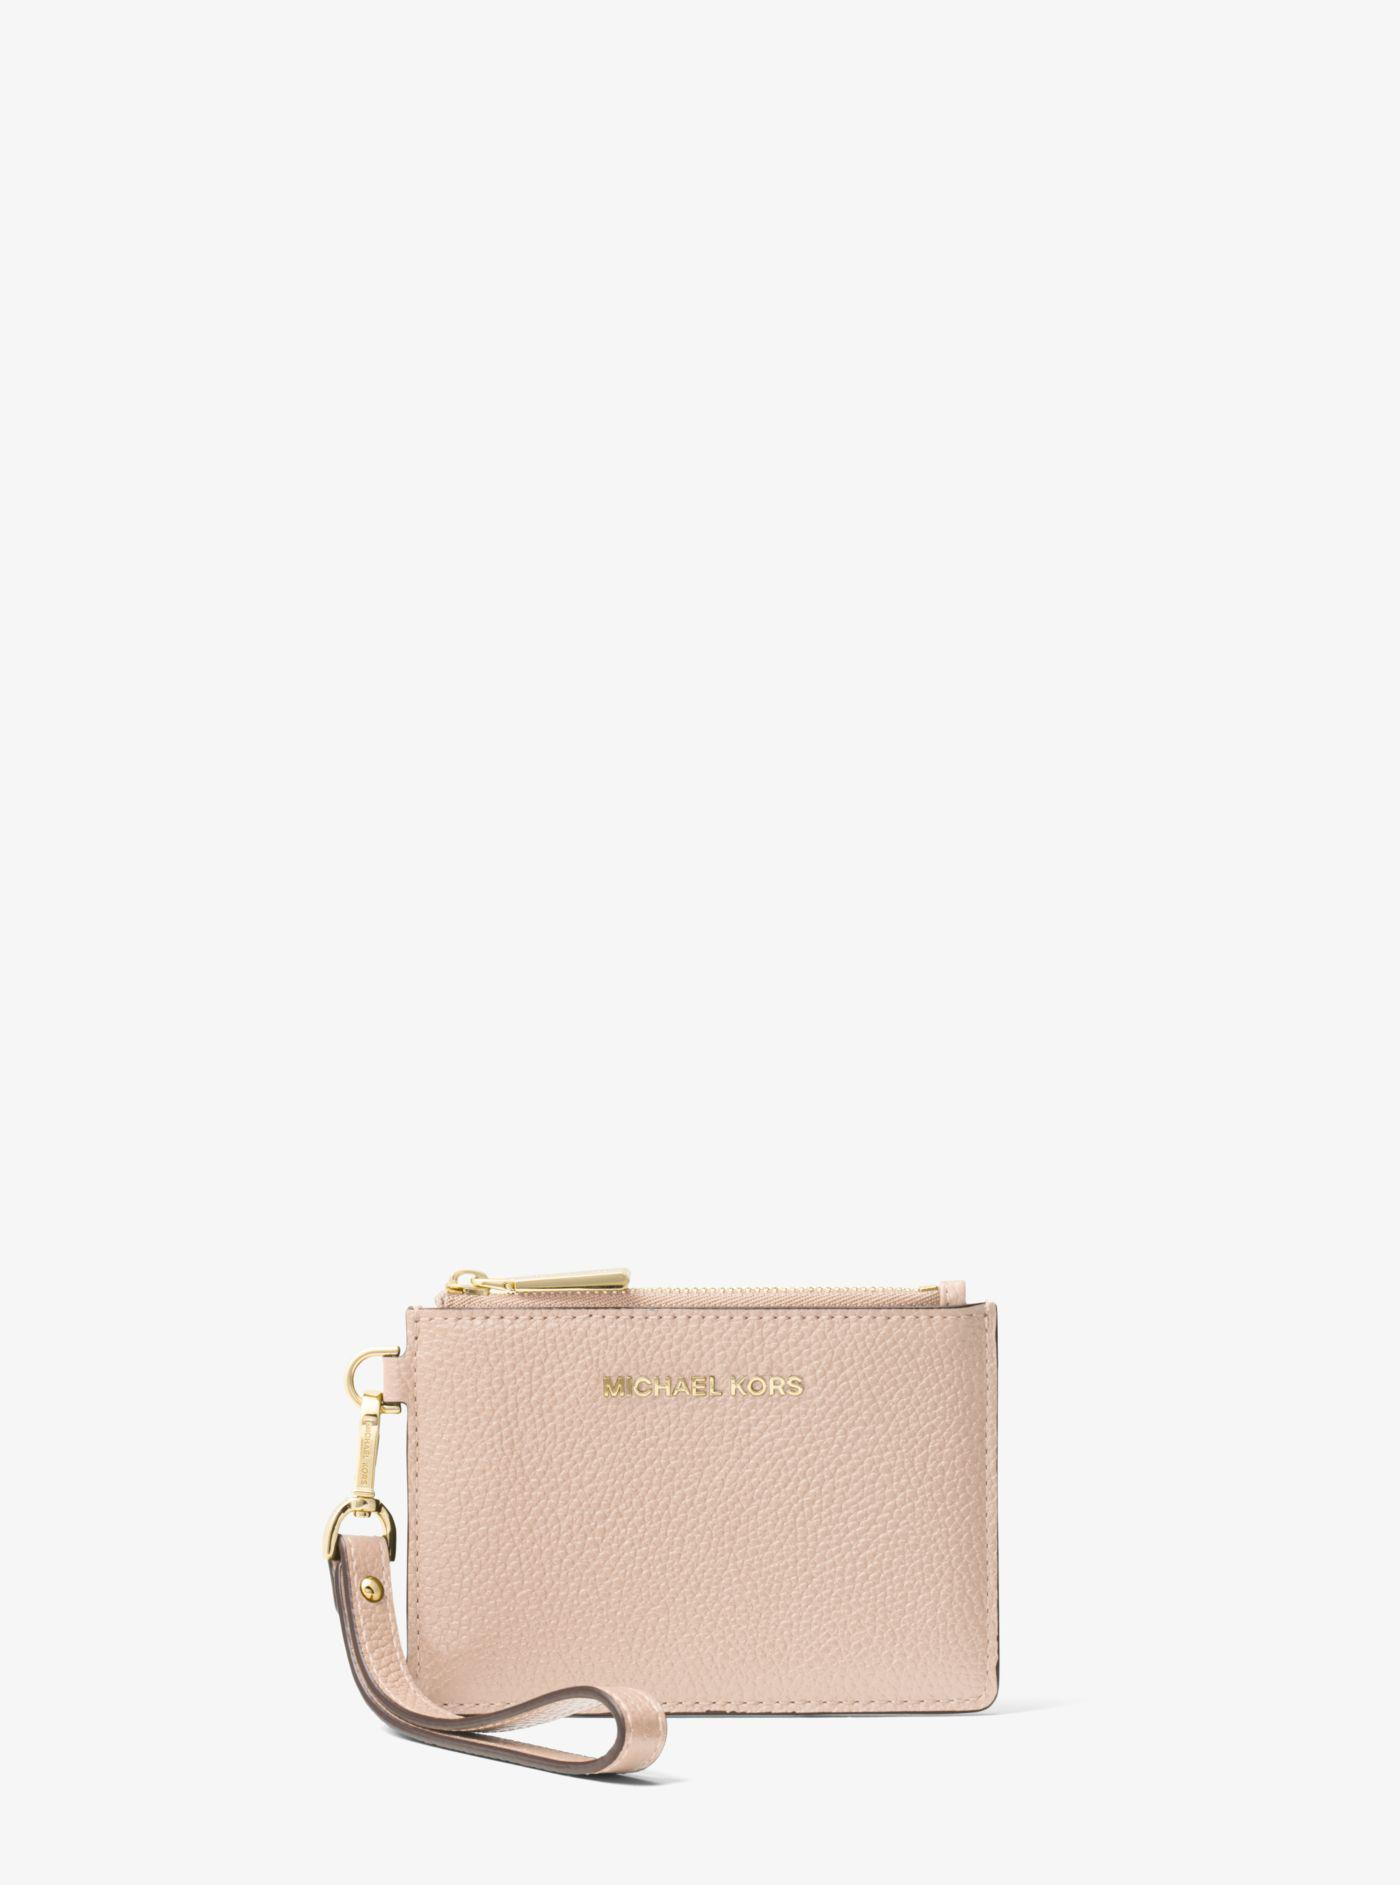 lyst michael kors mercer small leather coin purse in pink. Black Bedroom Furniture Sets. Home Design Ideas